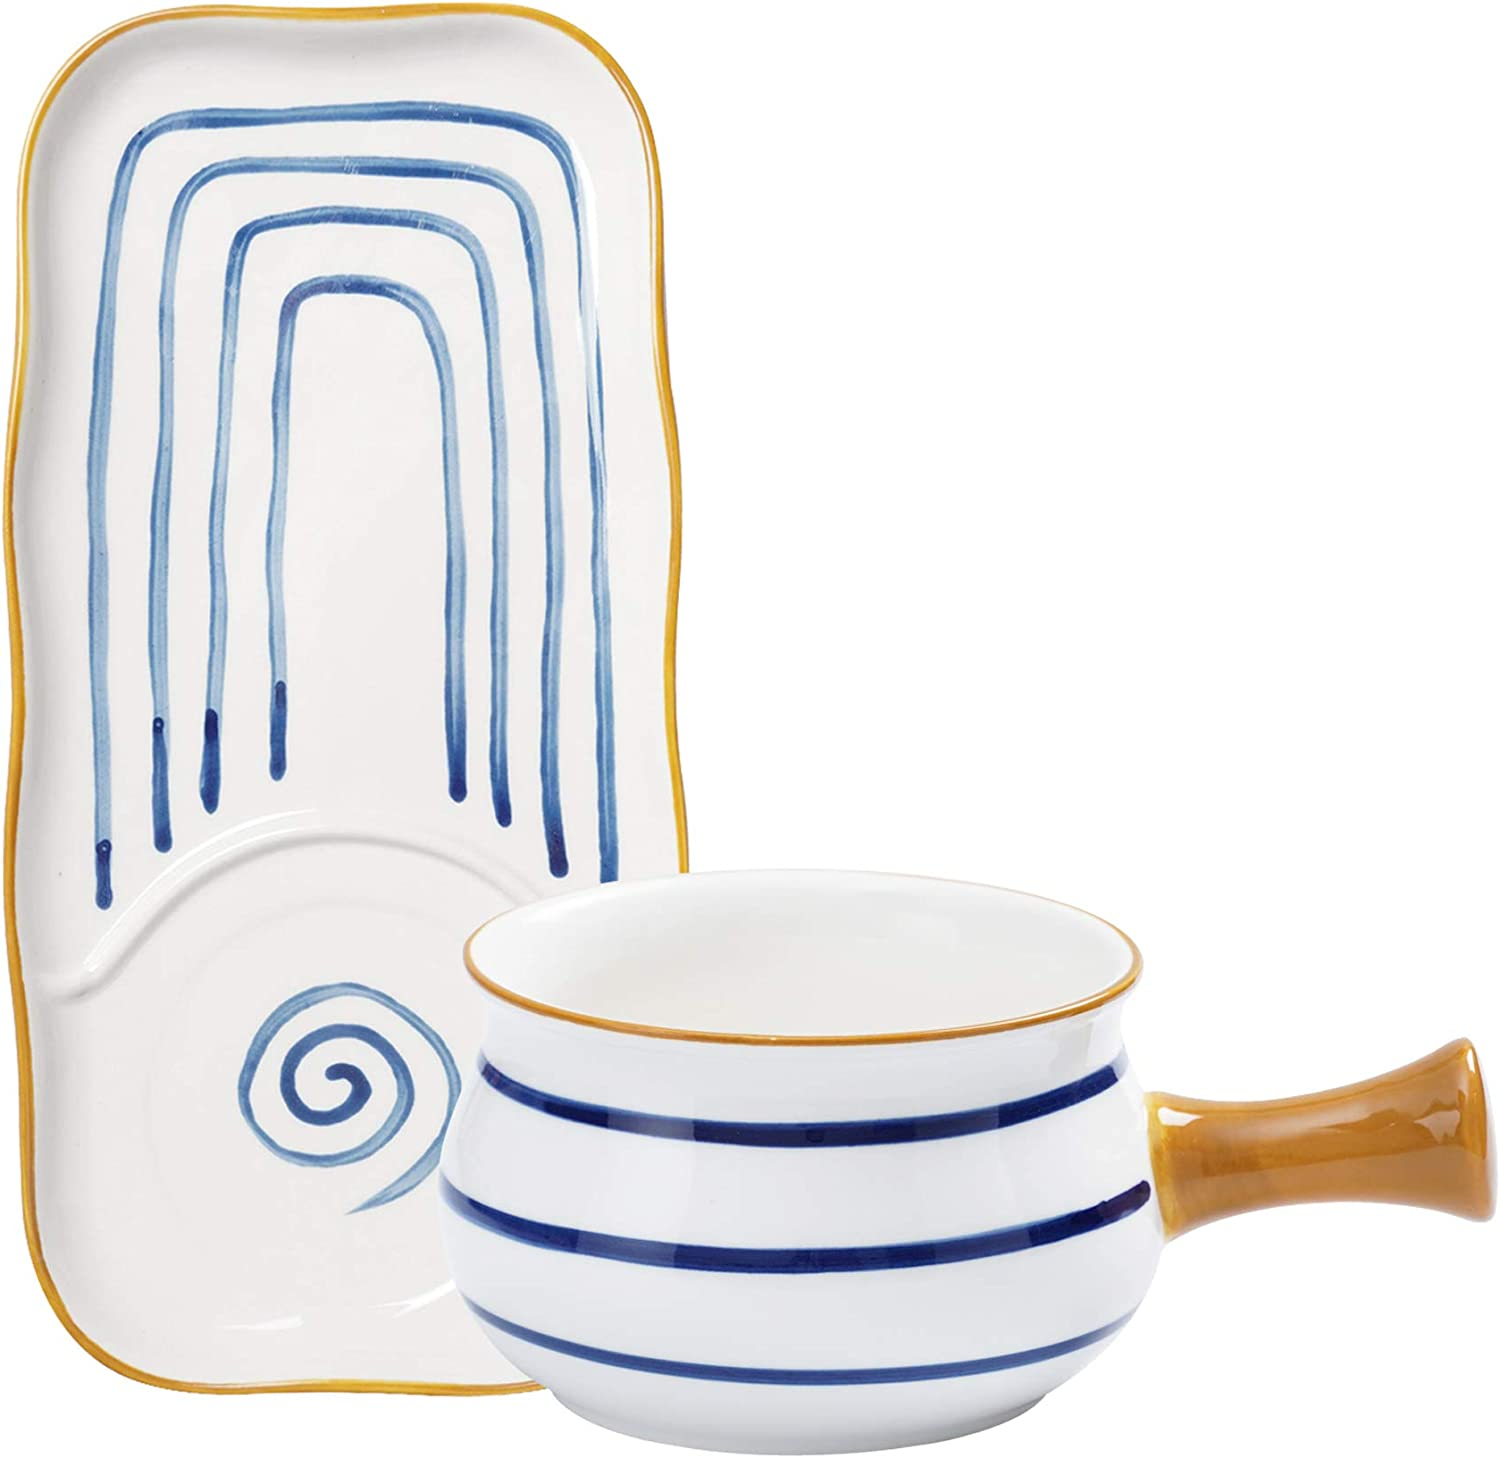 Jusalpha Individualized Creative Breakfast Max 82% Free shipping anywhere in the nation OFF Bowl with Set Handle